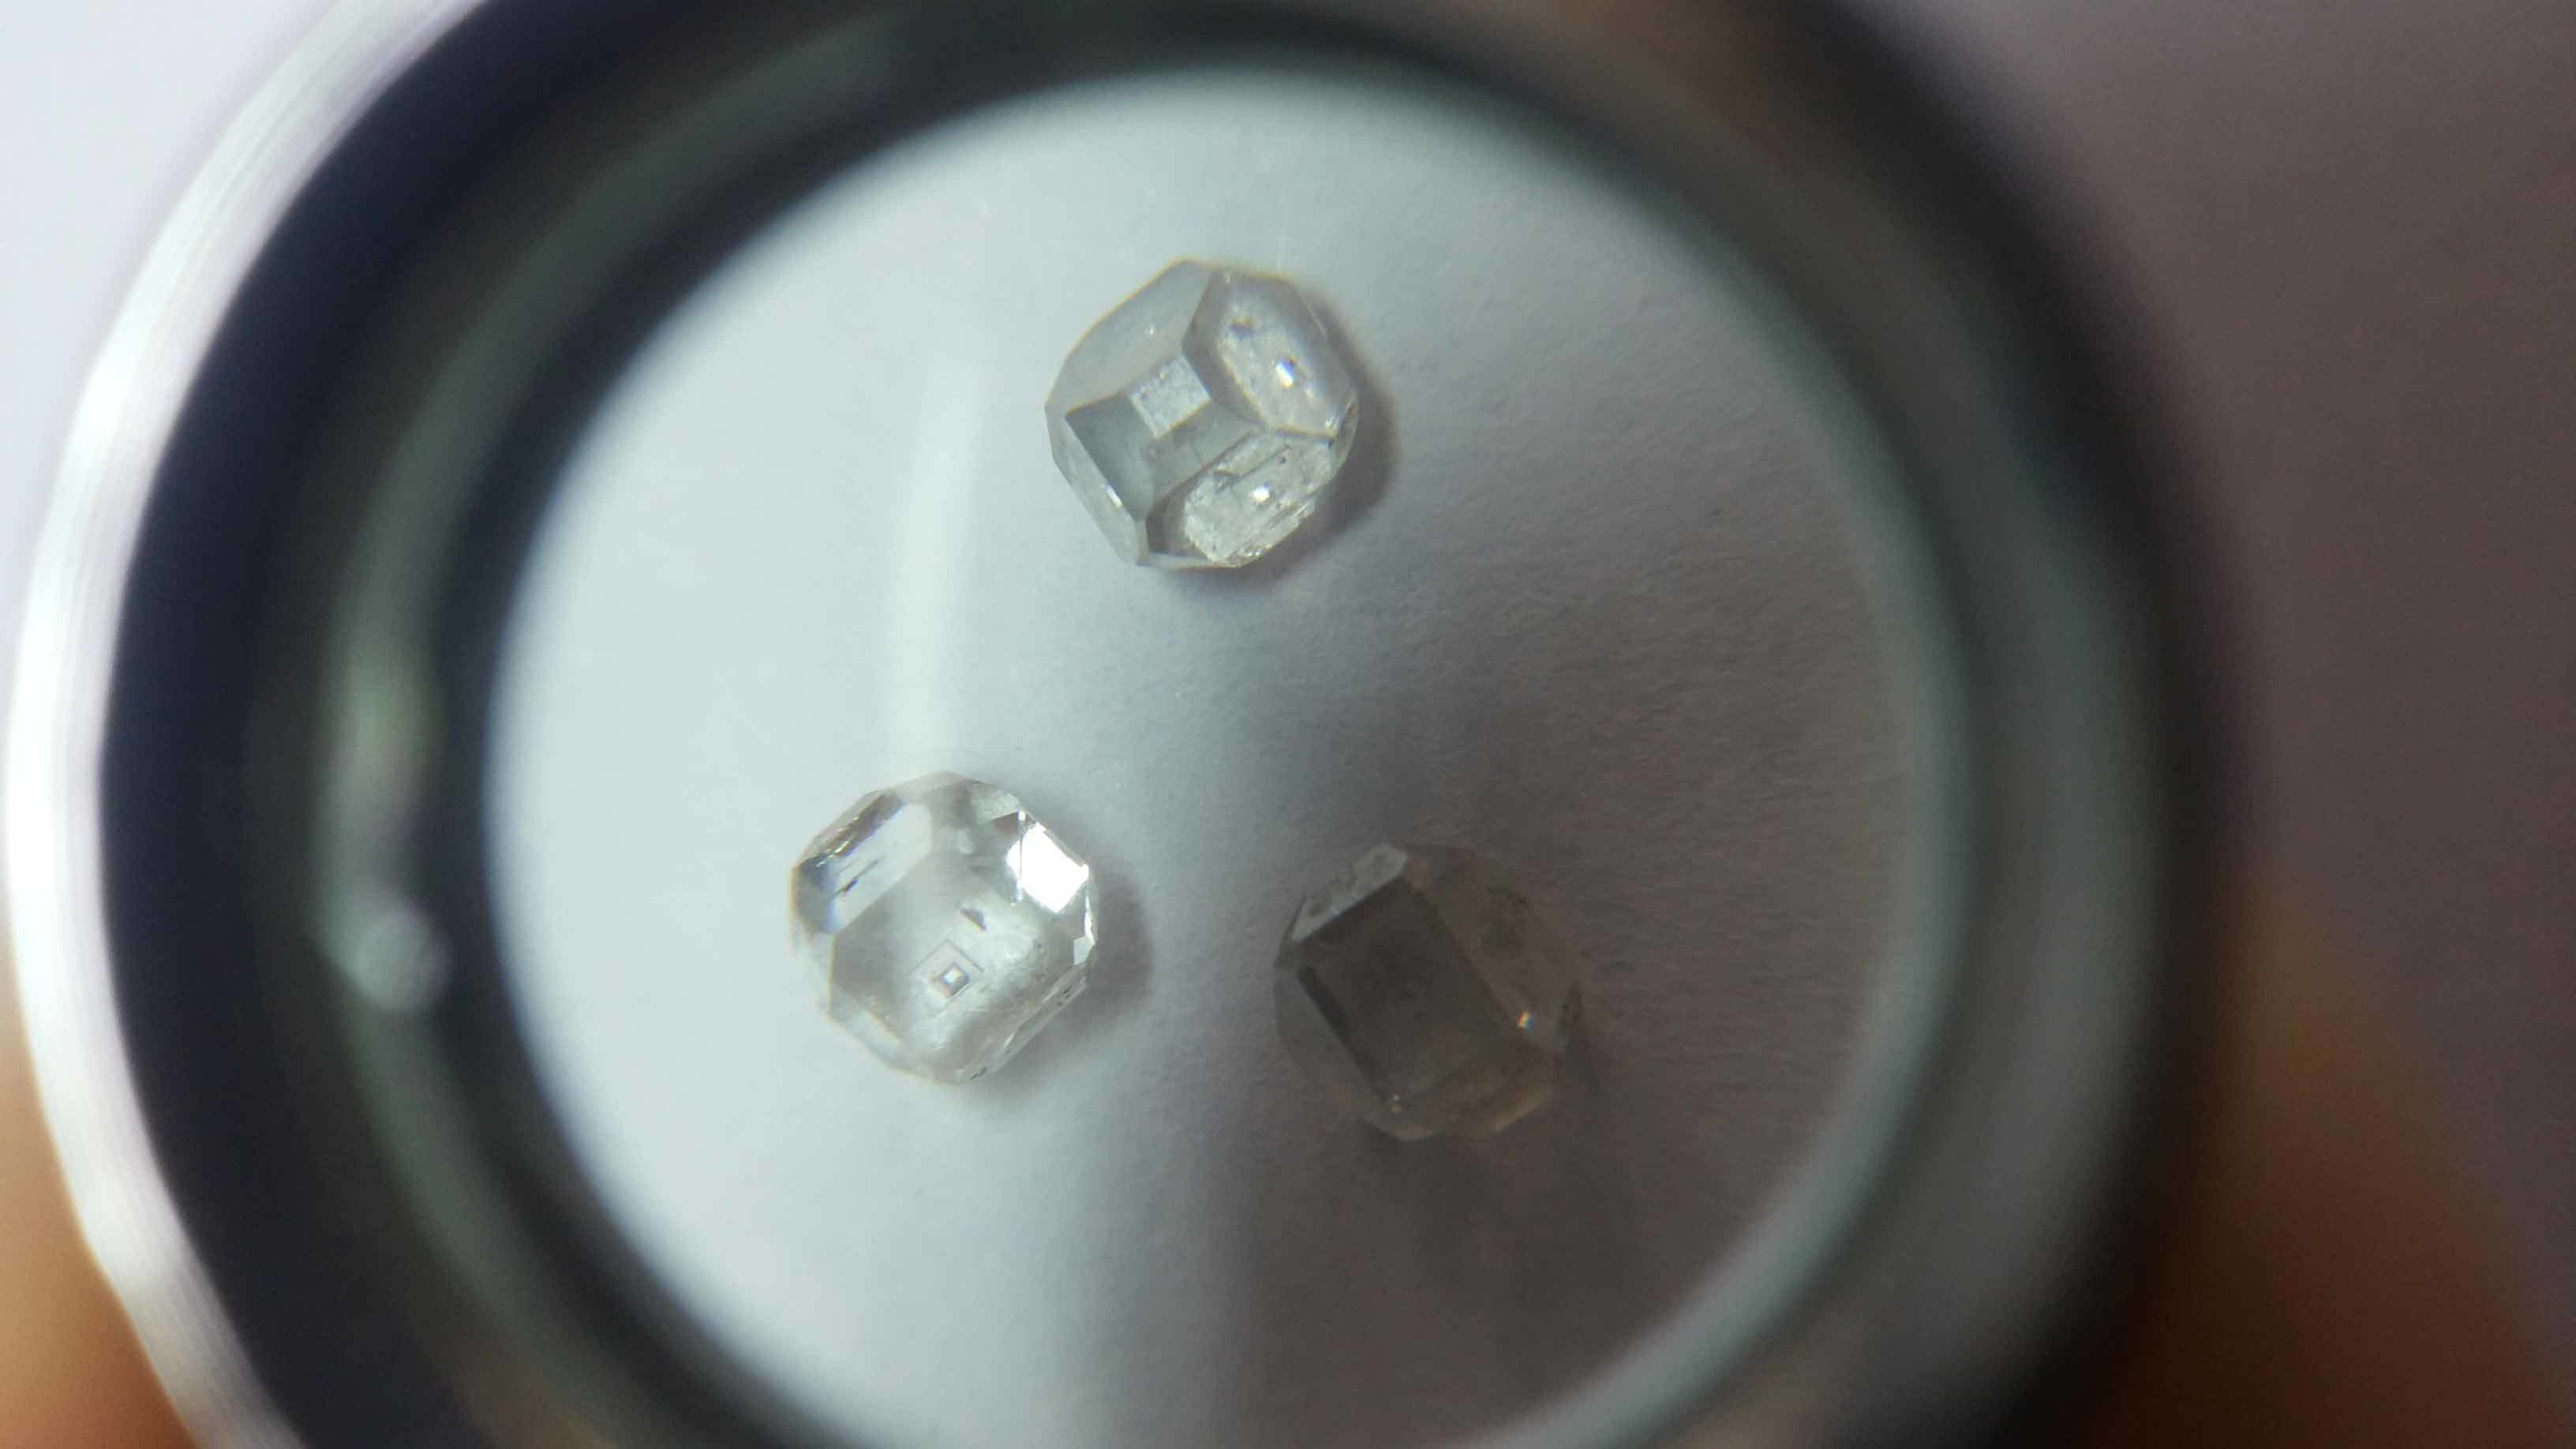 sizes in hpht linkedin specific requested fss lab diamond cutted created company original